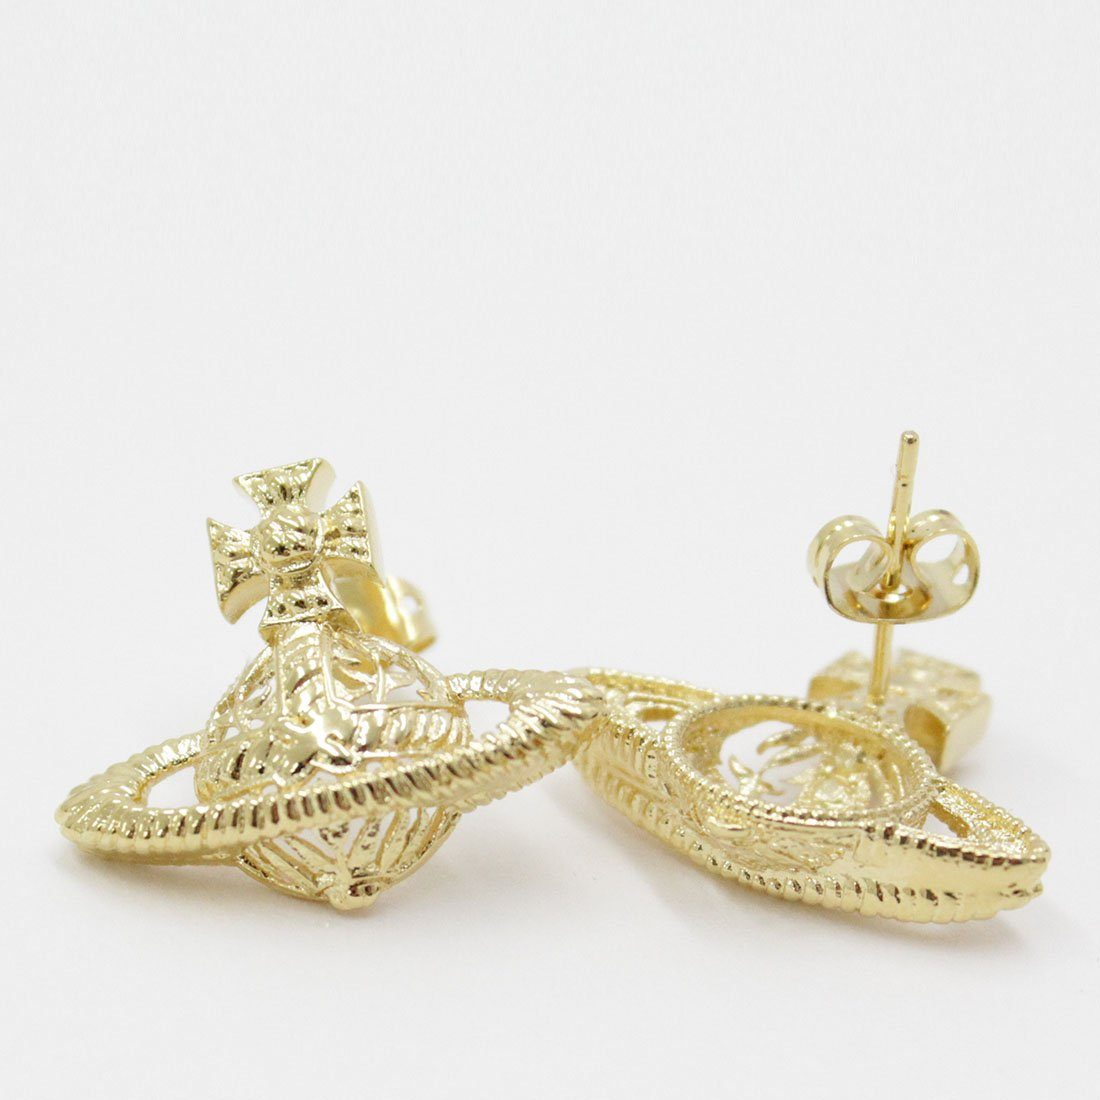 Vivienne Westwood Dolores Bas Relief Earrings Gold